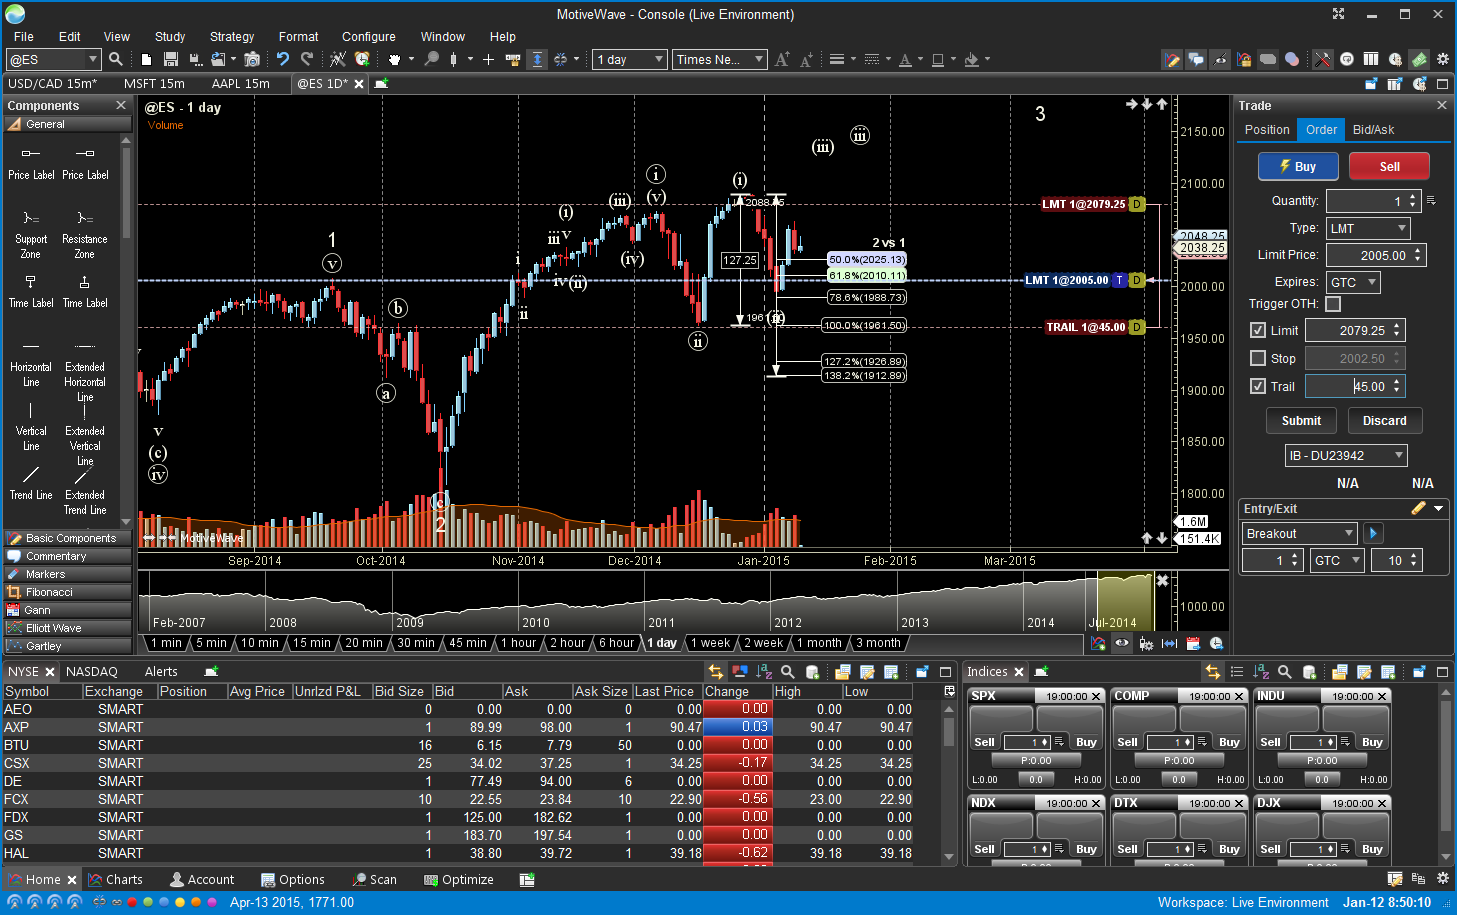 What are the forex brokers motive wave deals with